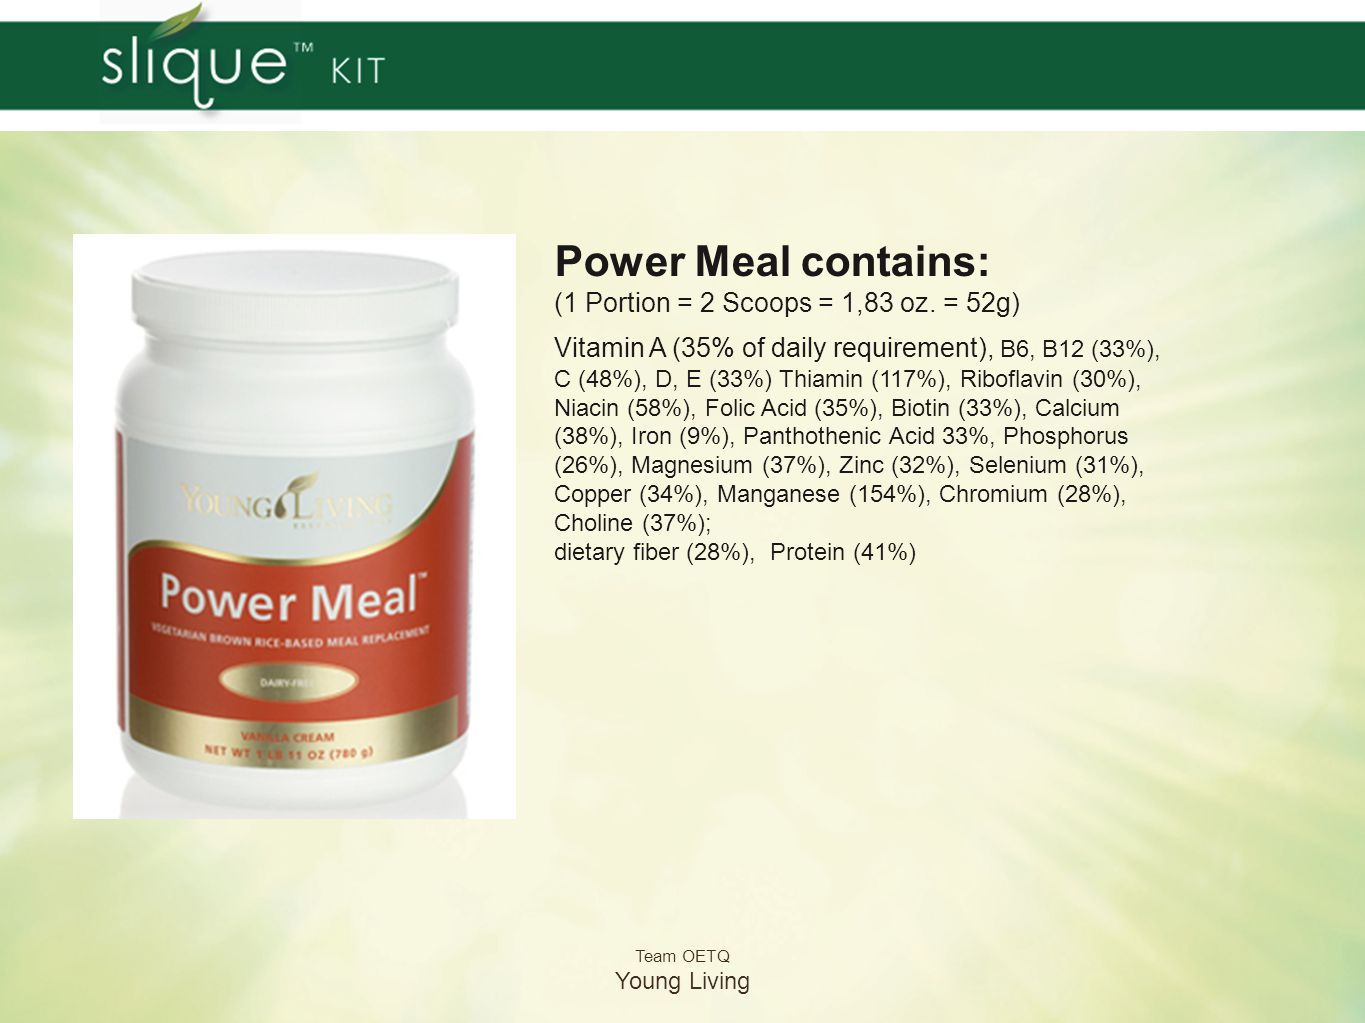 Power Meal contains: (1 Portion = 2 Scoops = 1,83 oz. = 52g)